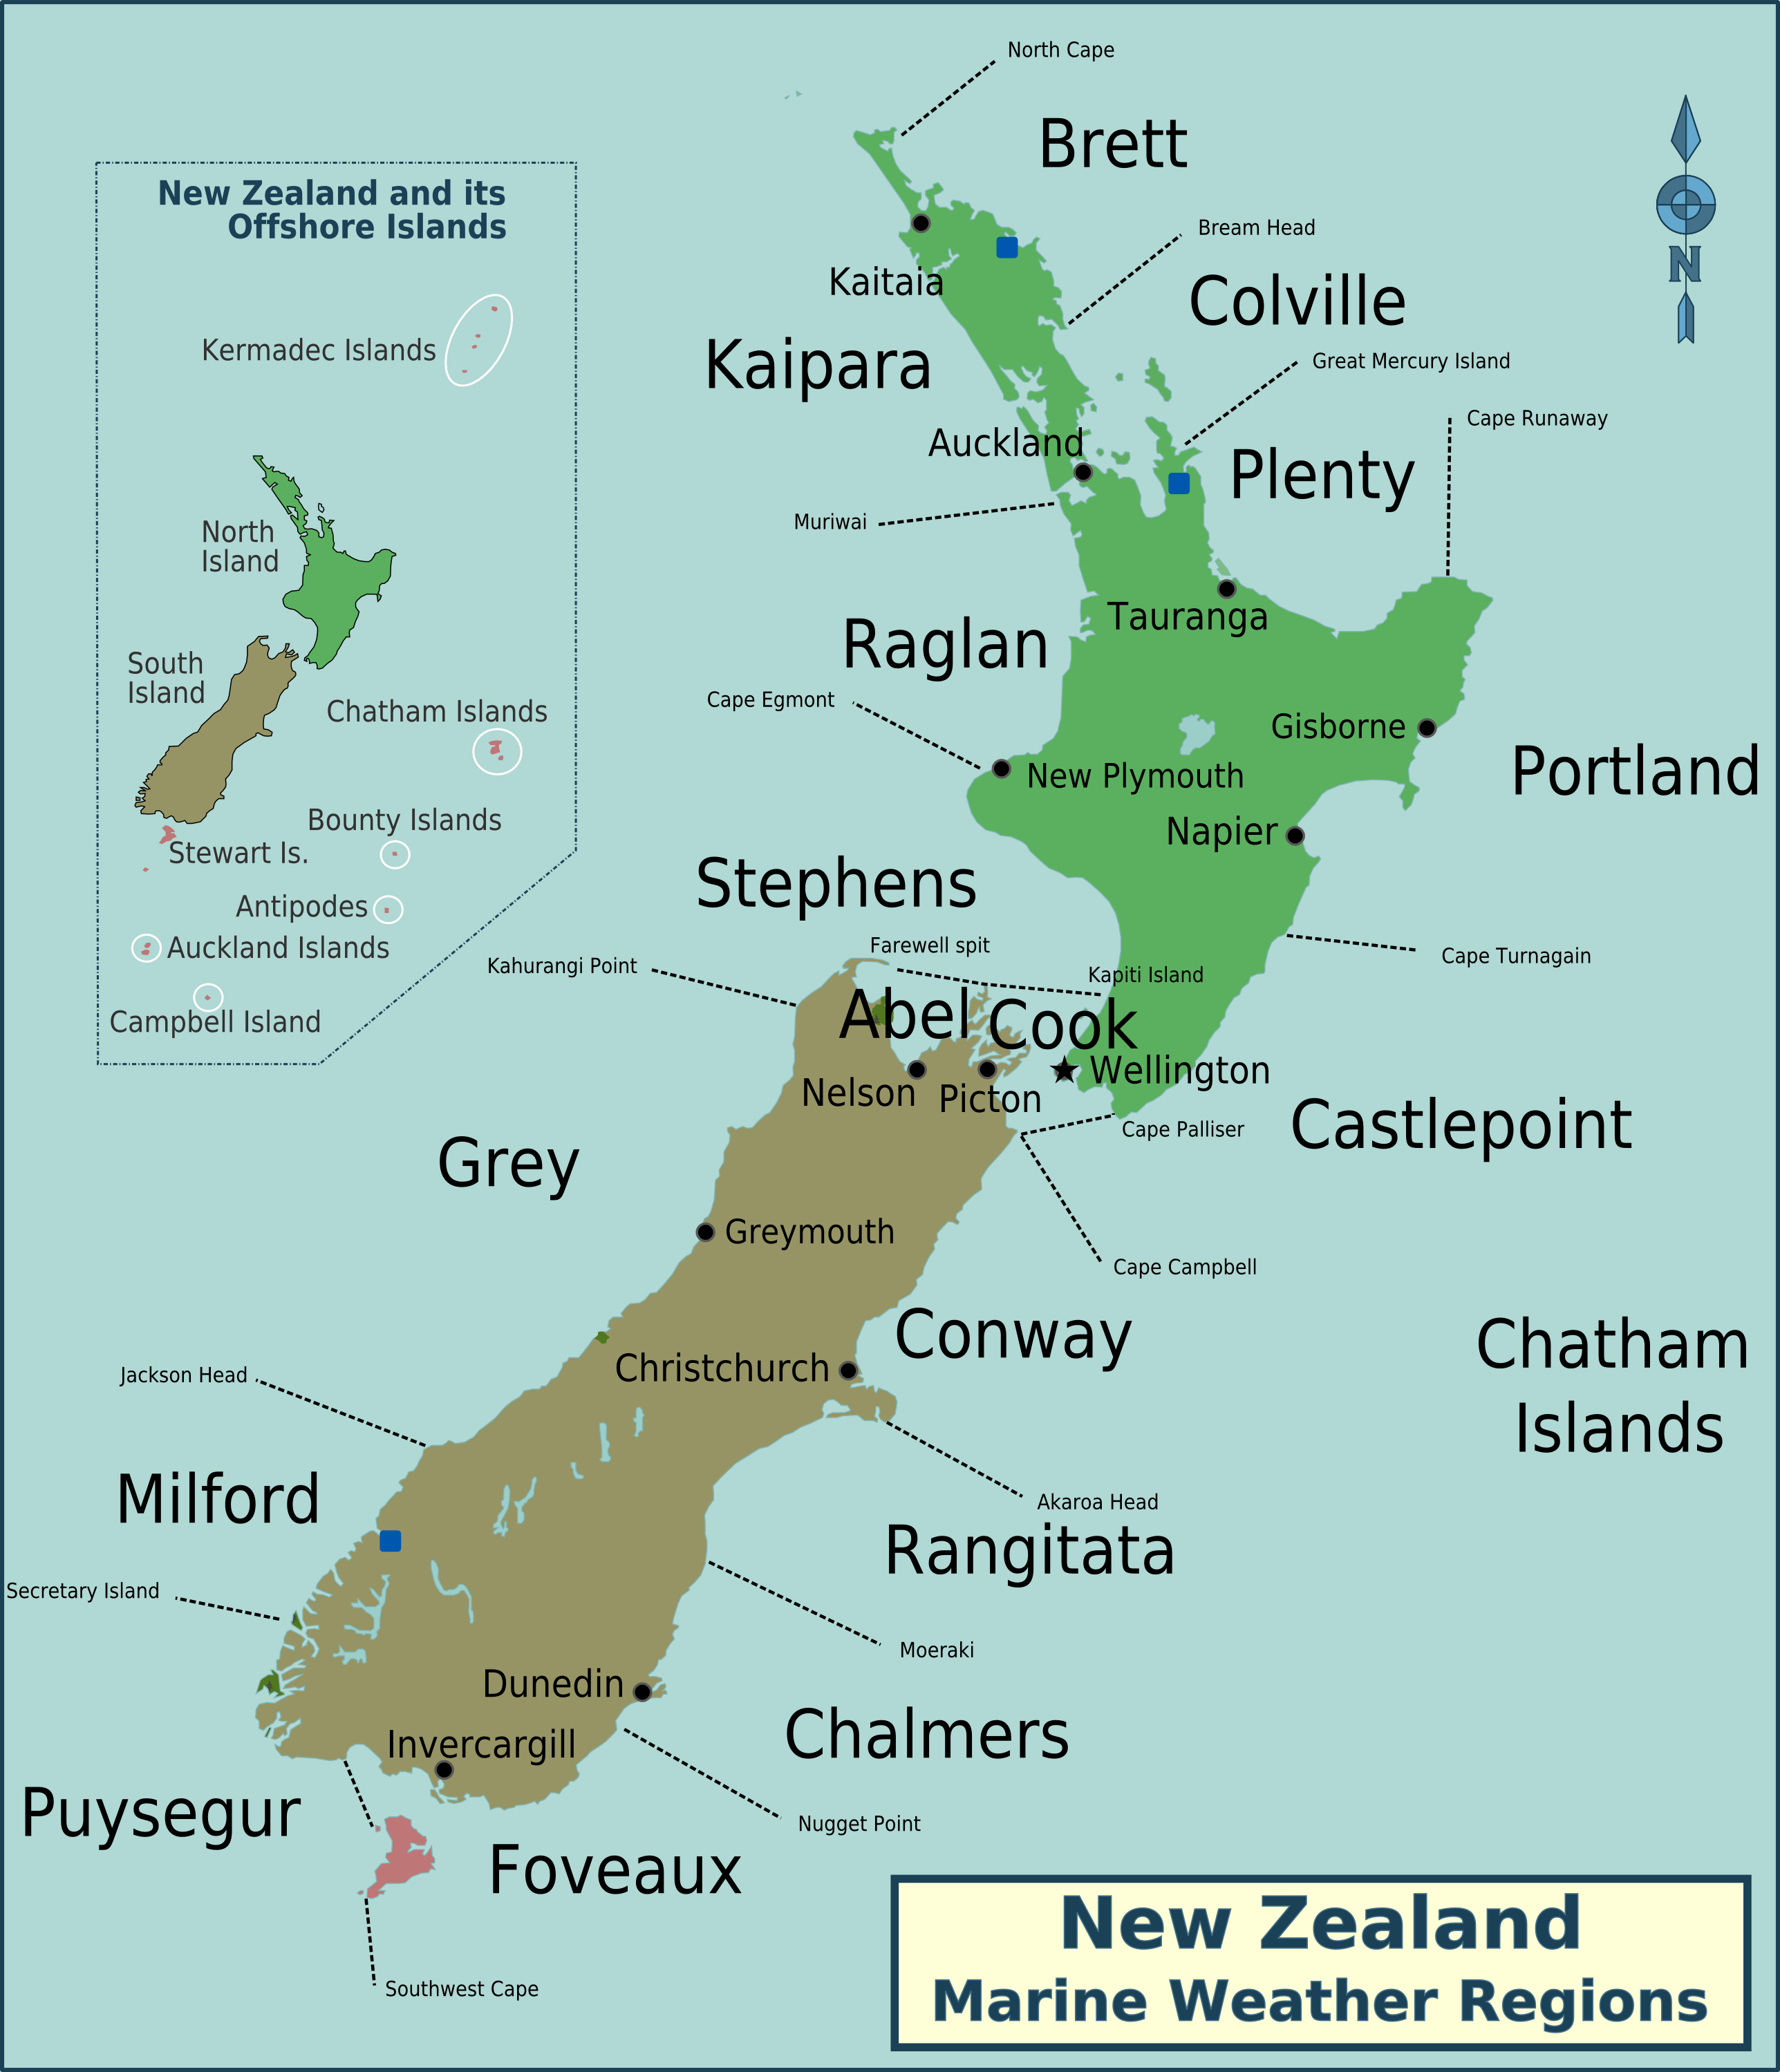 FileNew Zealand Marine Weather Regions Mappng Wikimedia Commons